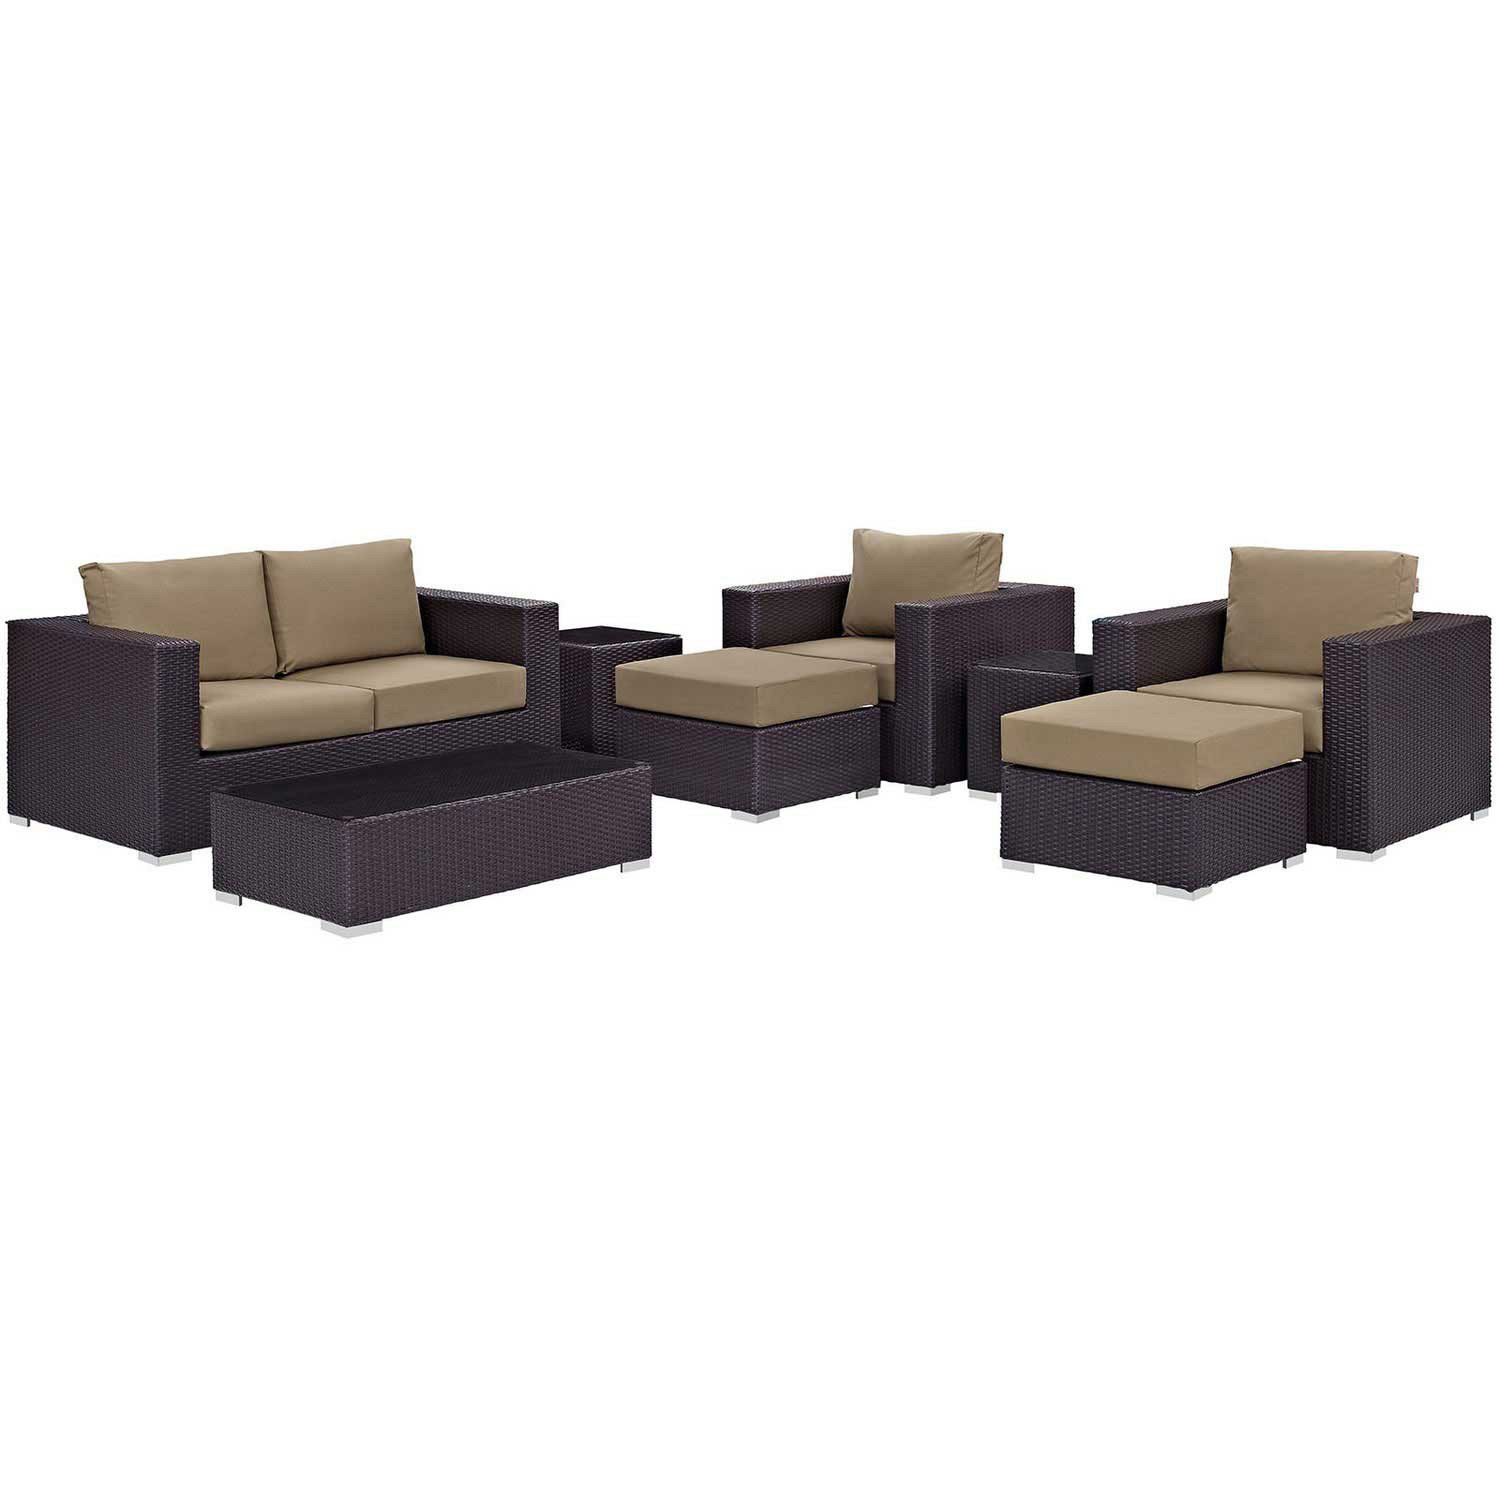 Modway Convene 8 Piece Outdoor Patio Sofa Set - Espresso Mocha